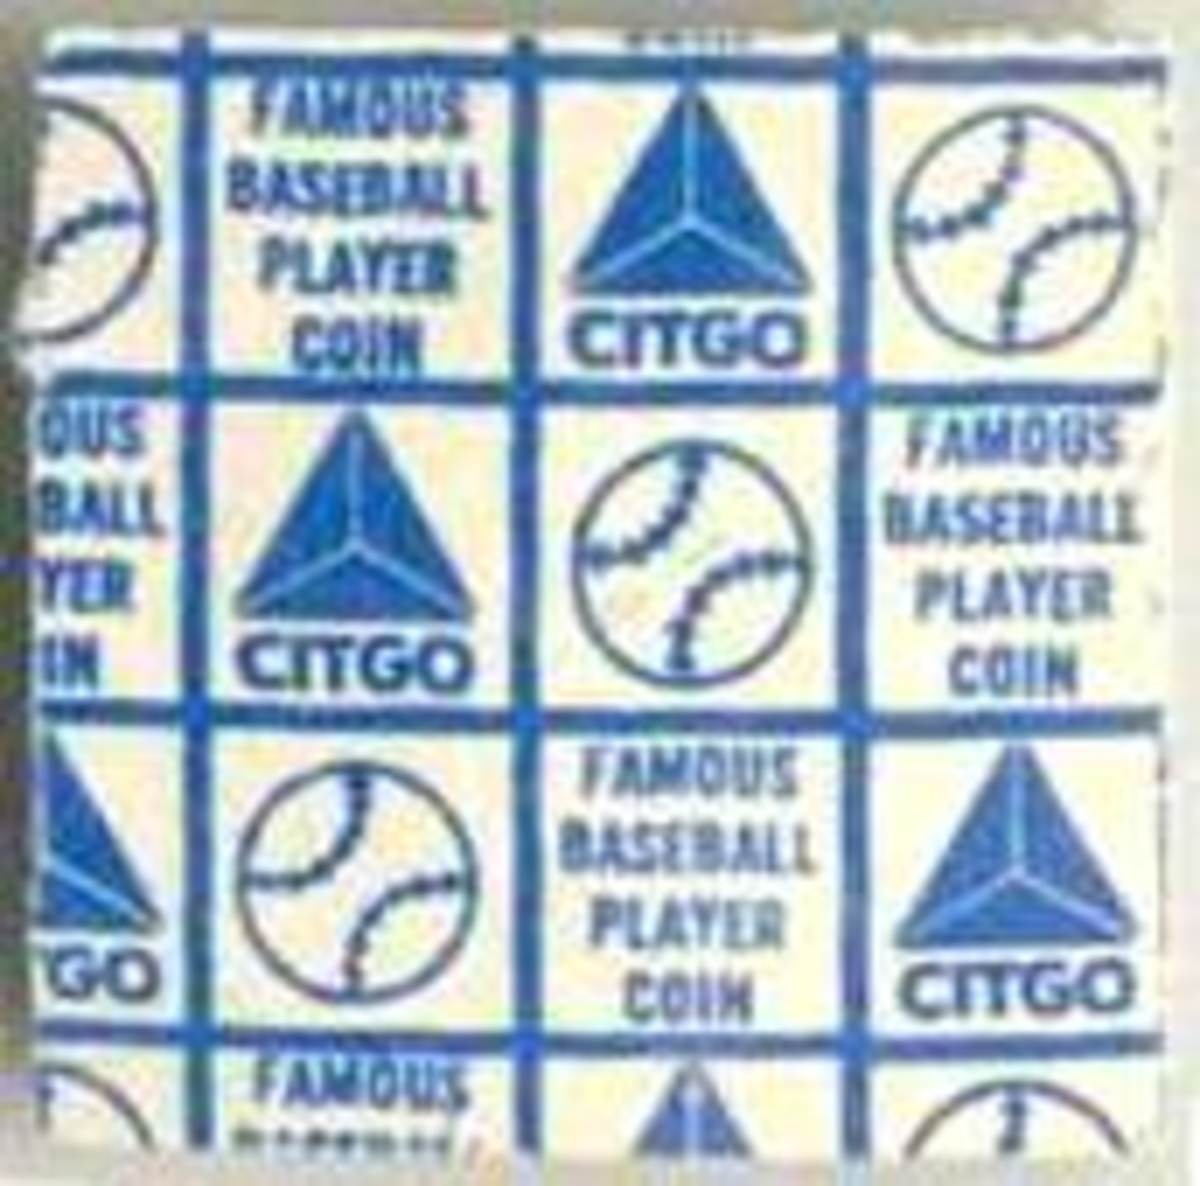 """Not much to look at, but the original single-coin packs promised a """"famous baseball player."""""""